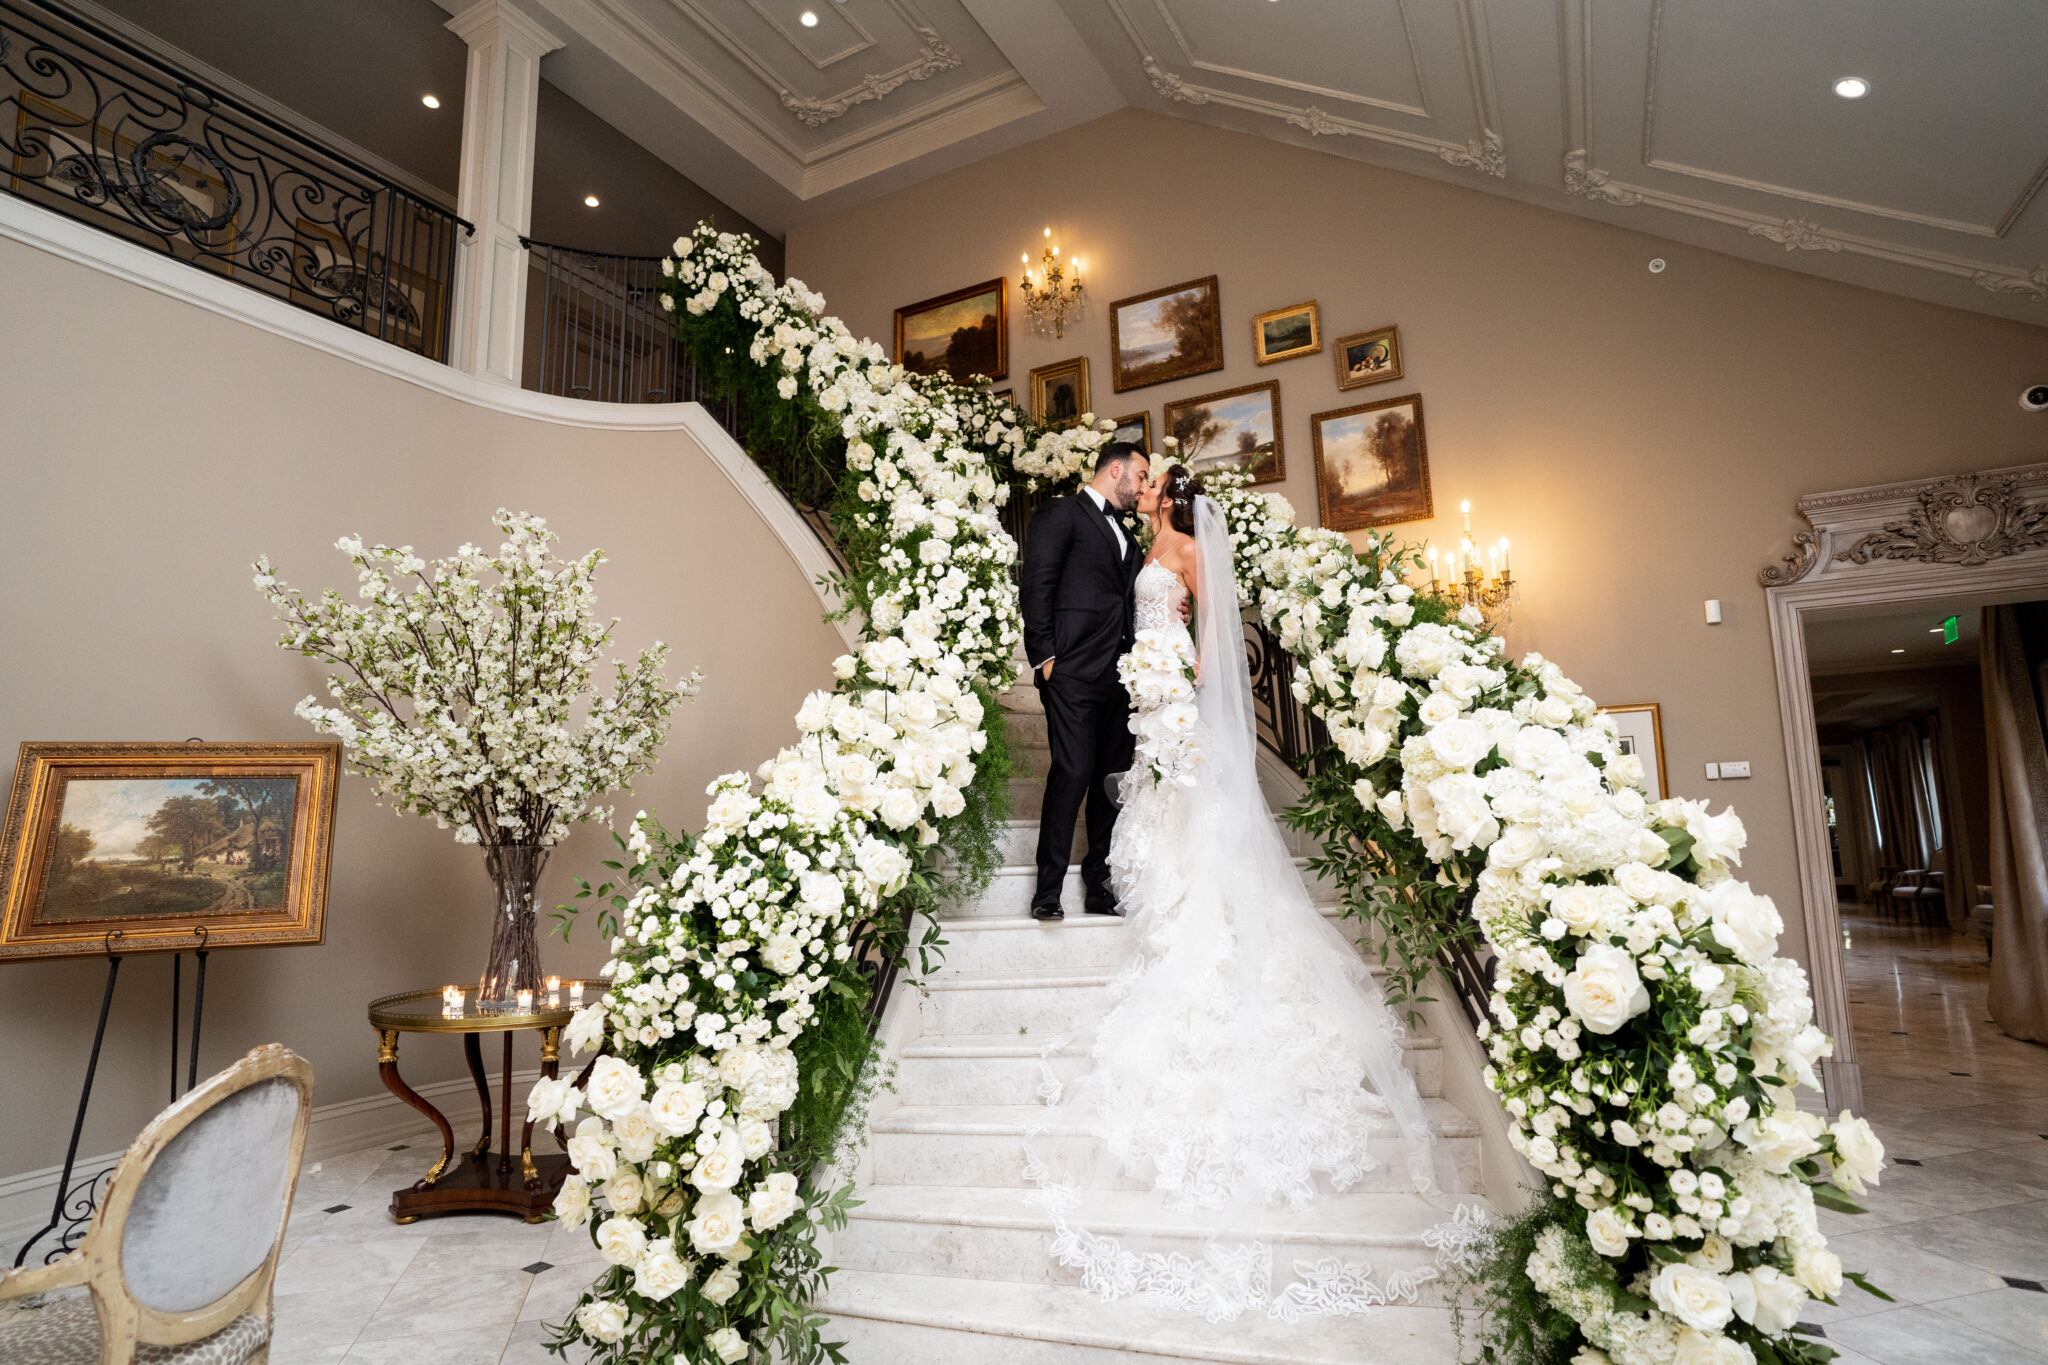 white and green floral staircase with bride and groom